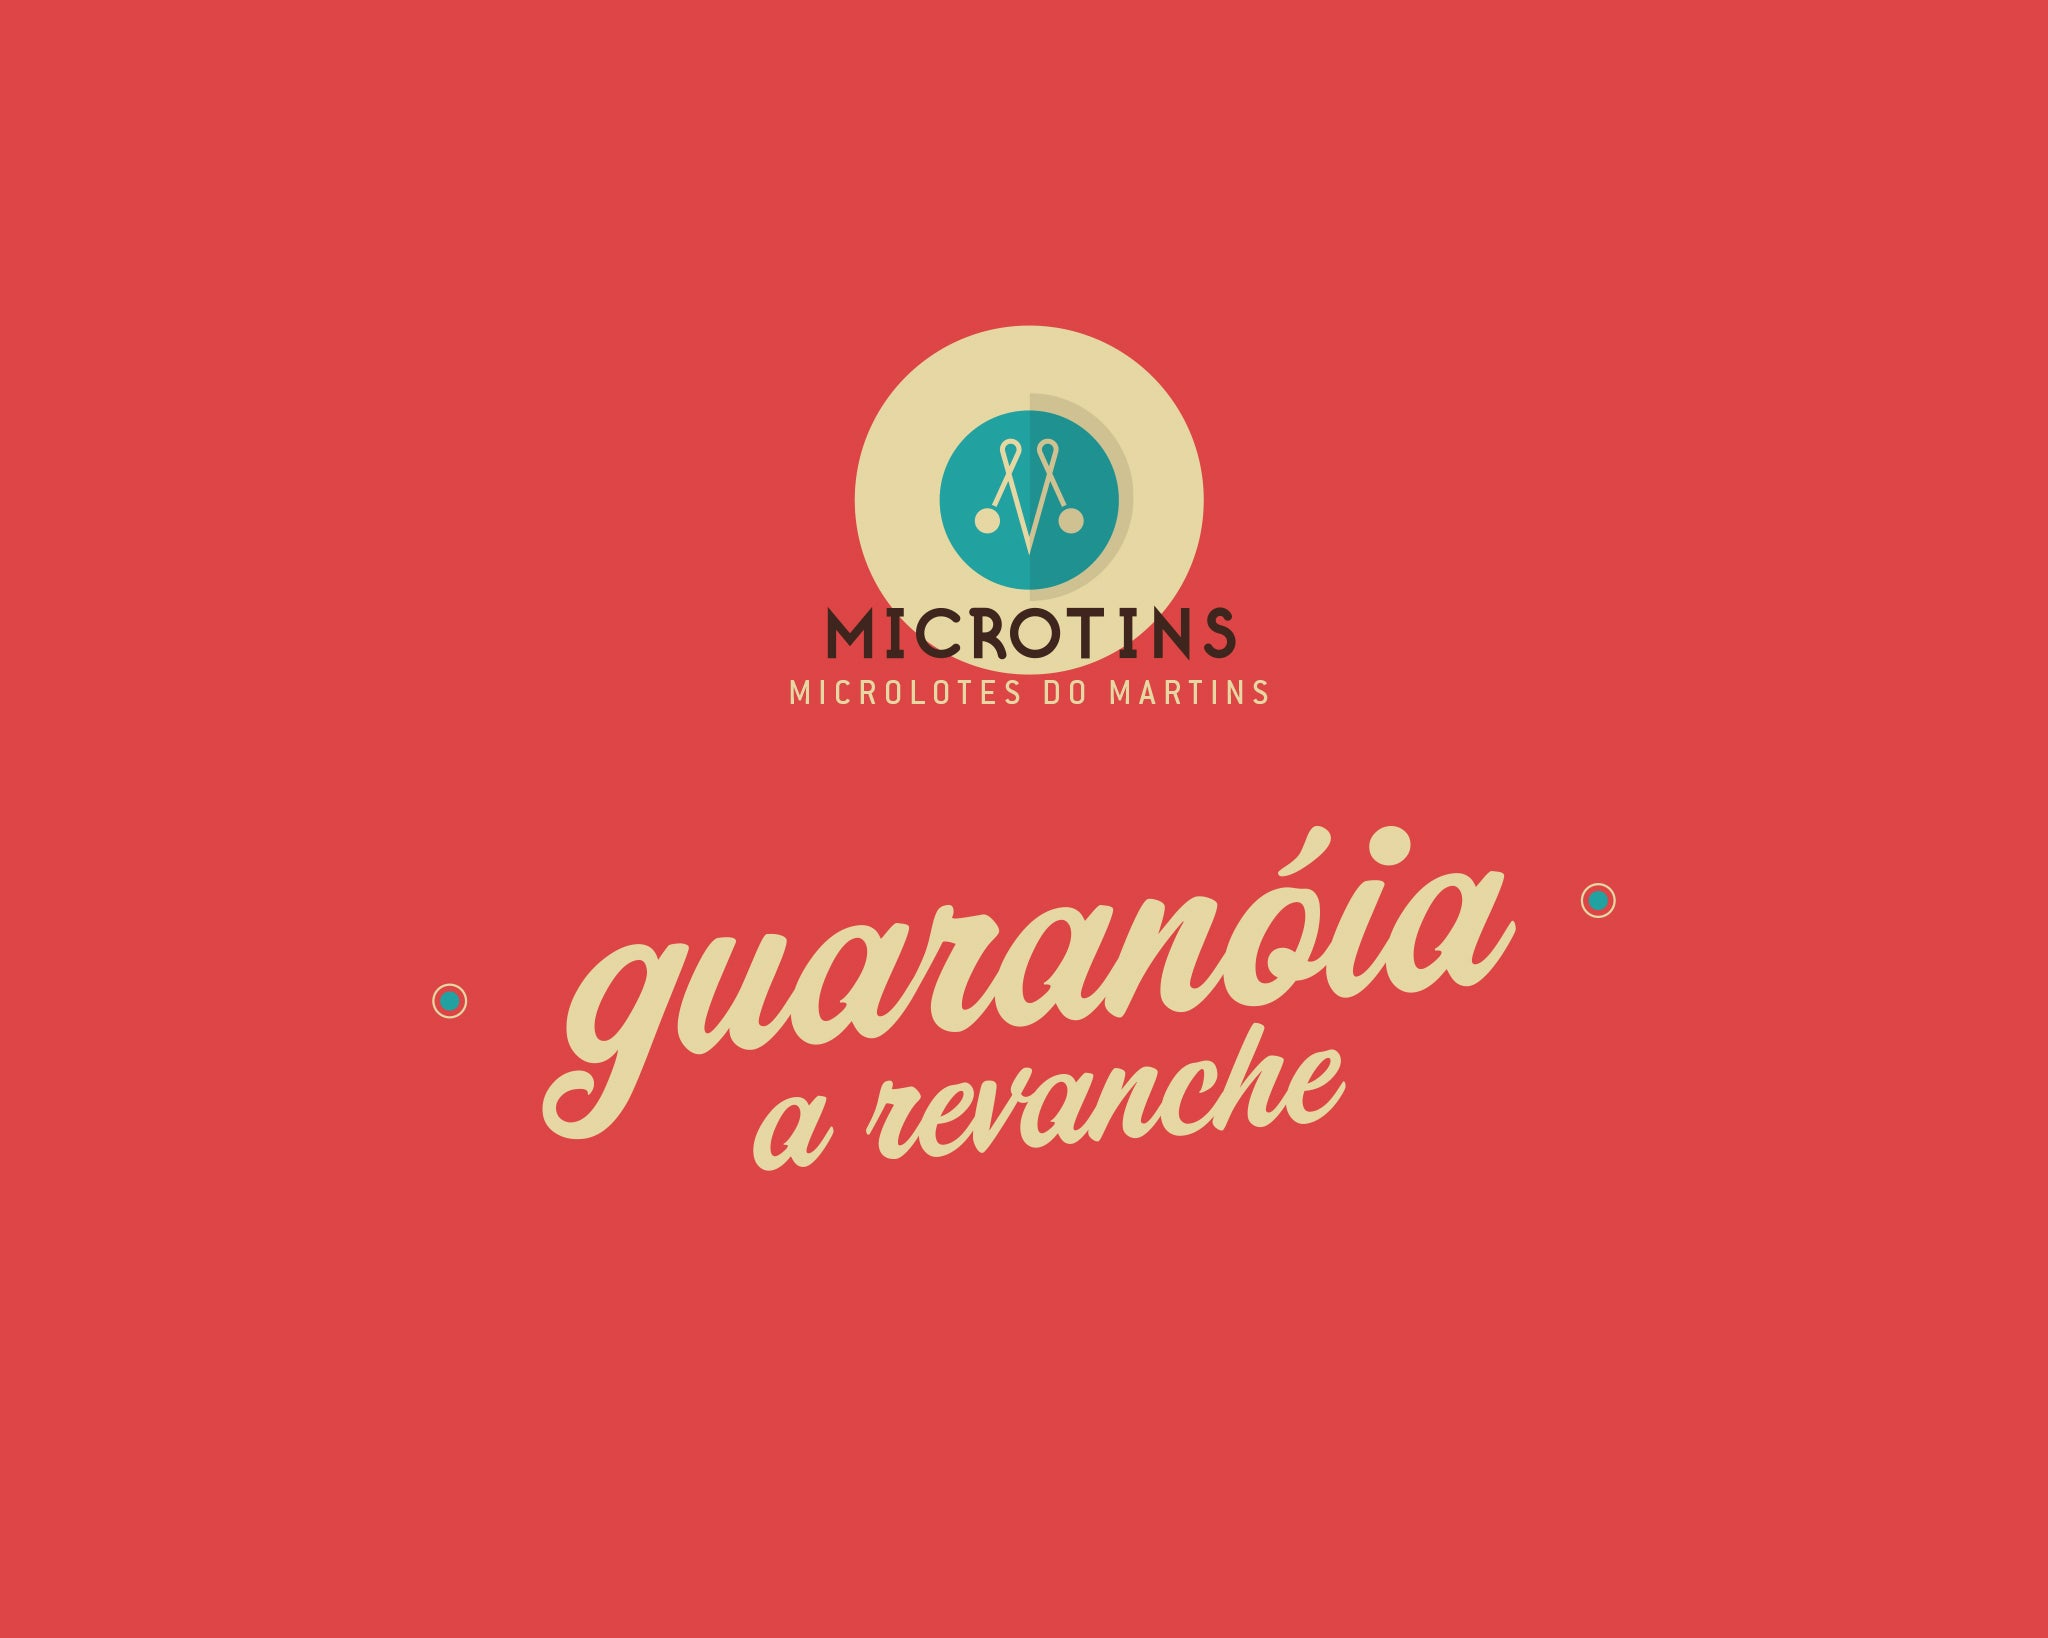 Guaranóia